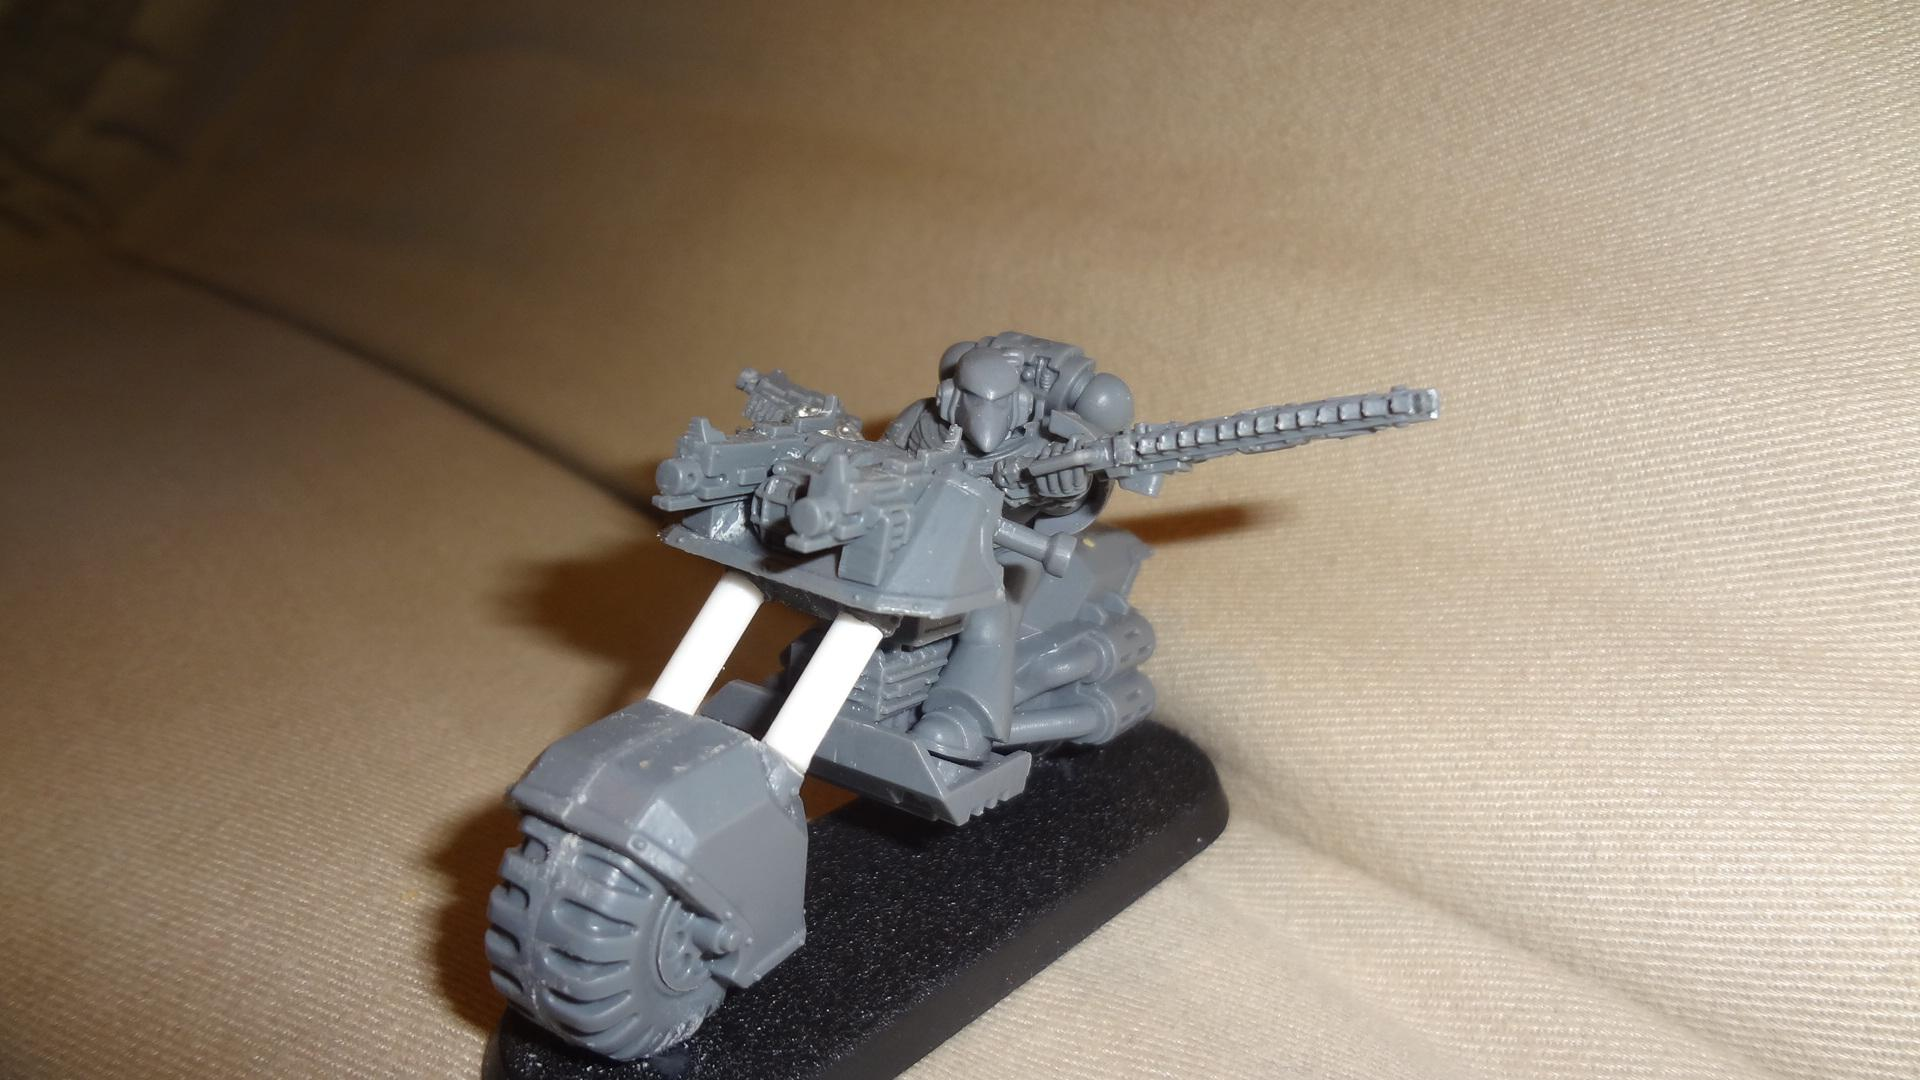 Apothecary with a pewter arm from old BA kit